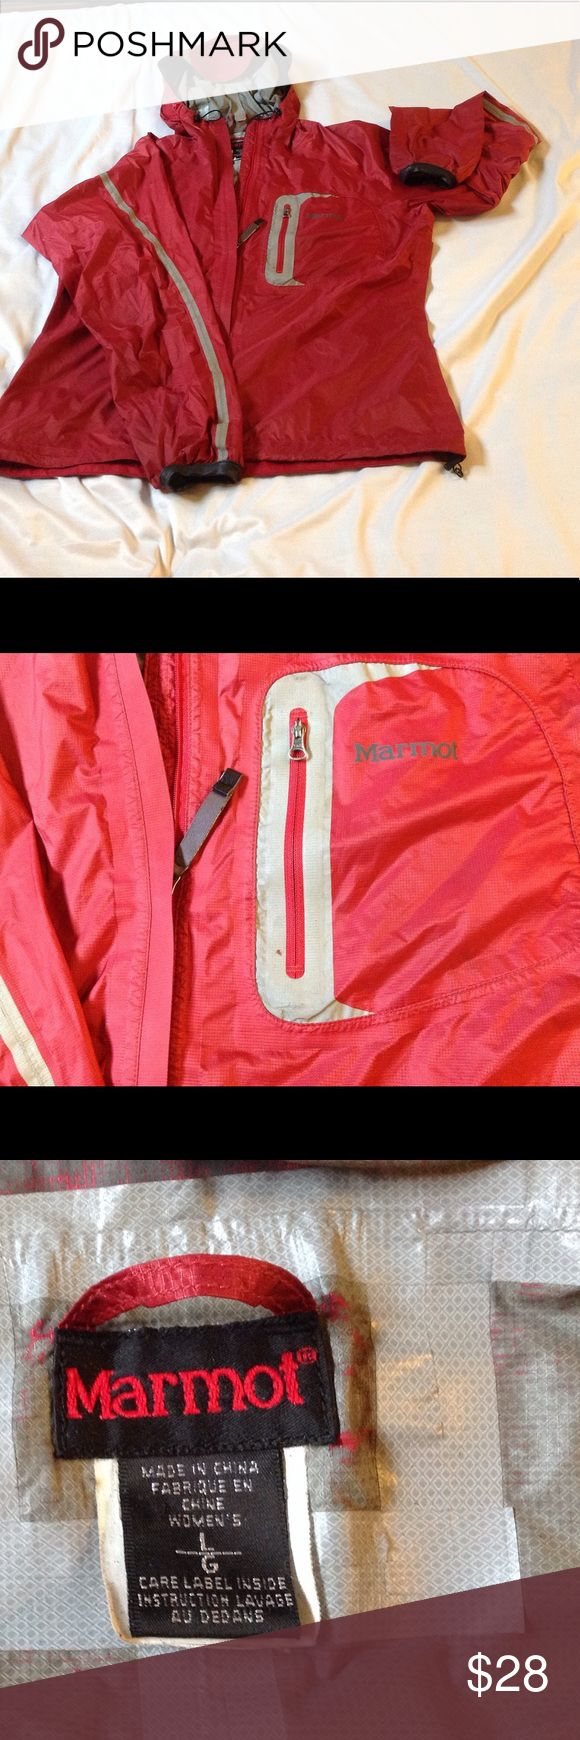 Marmot breathable shell with reflector fabric Good lightly used condition.  Reflector tape around front pocket has one small worn spot.  Back of lower left arm has bike grease stain that could be removed with a degreaser, both issues pictured. Marmot Jackets & Coats